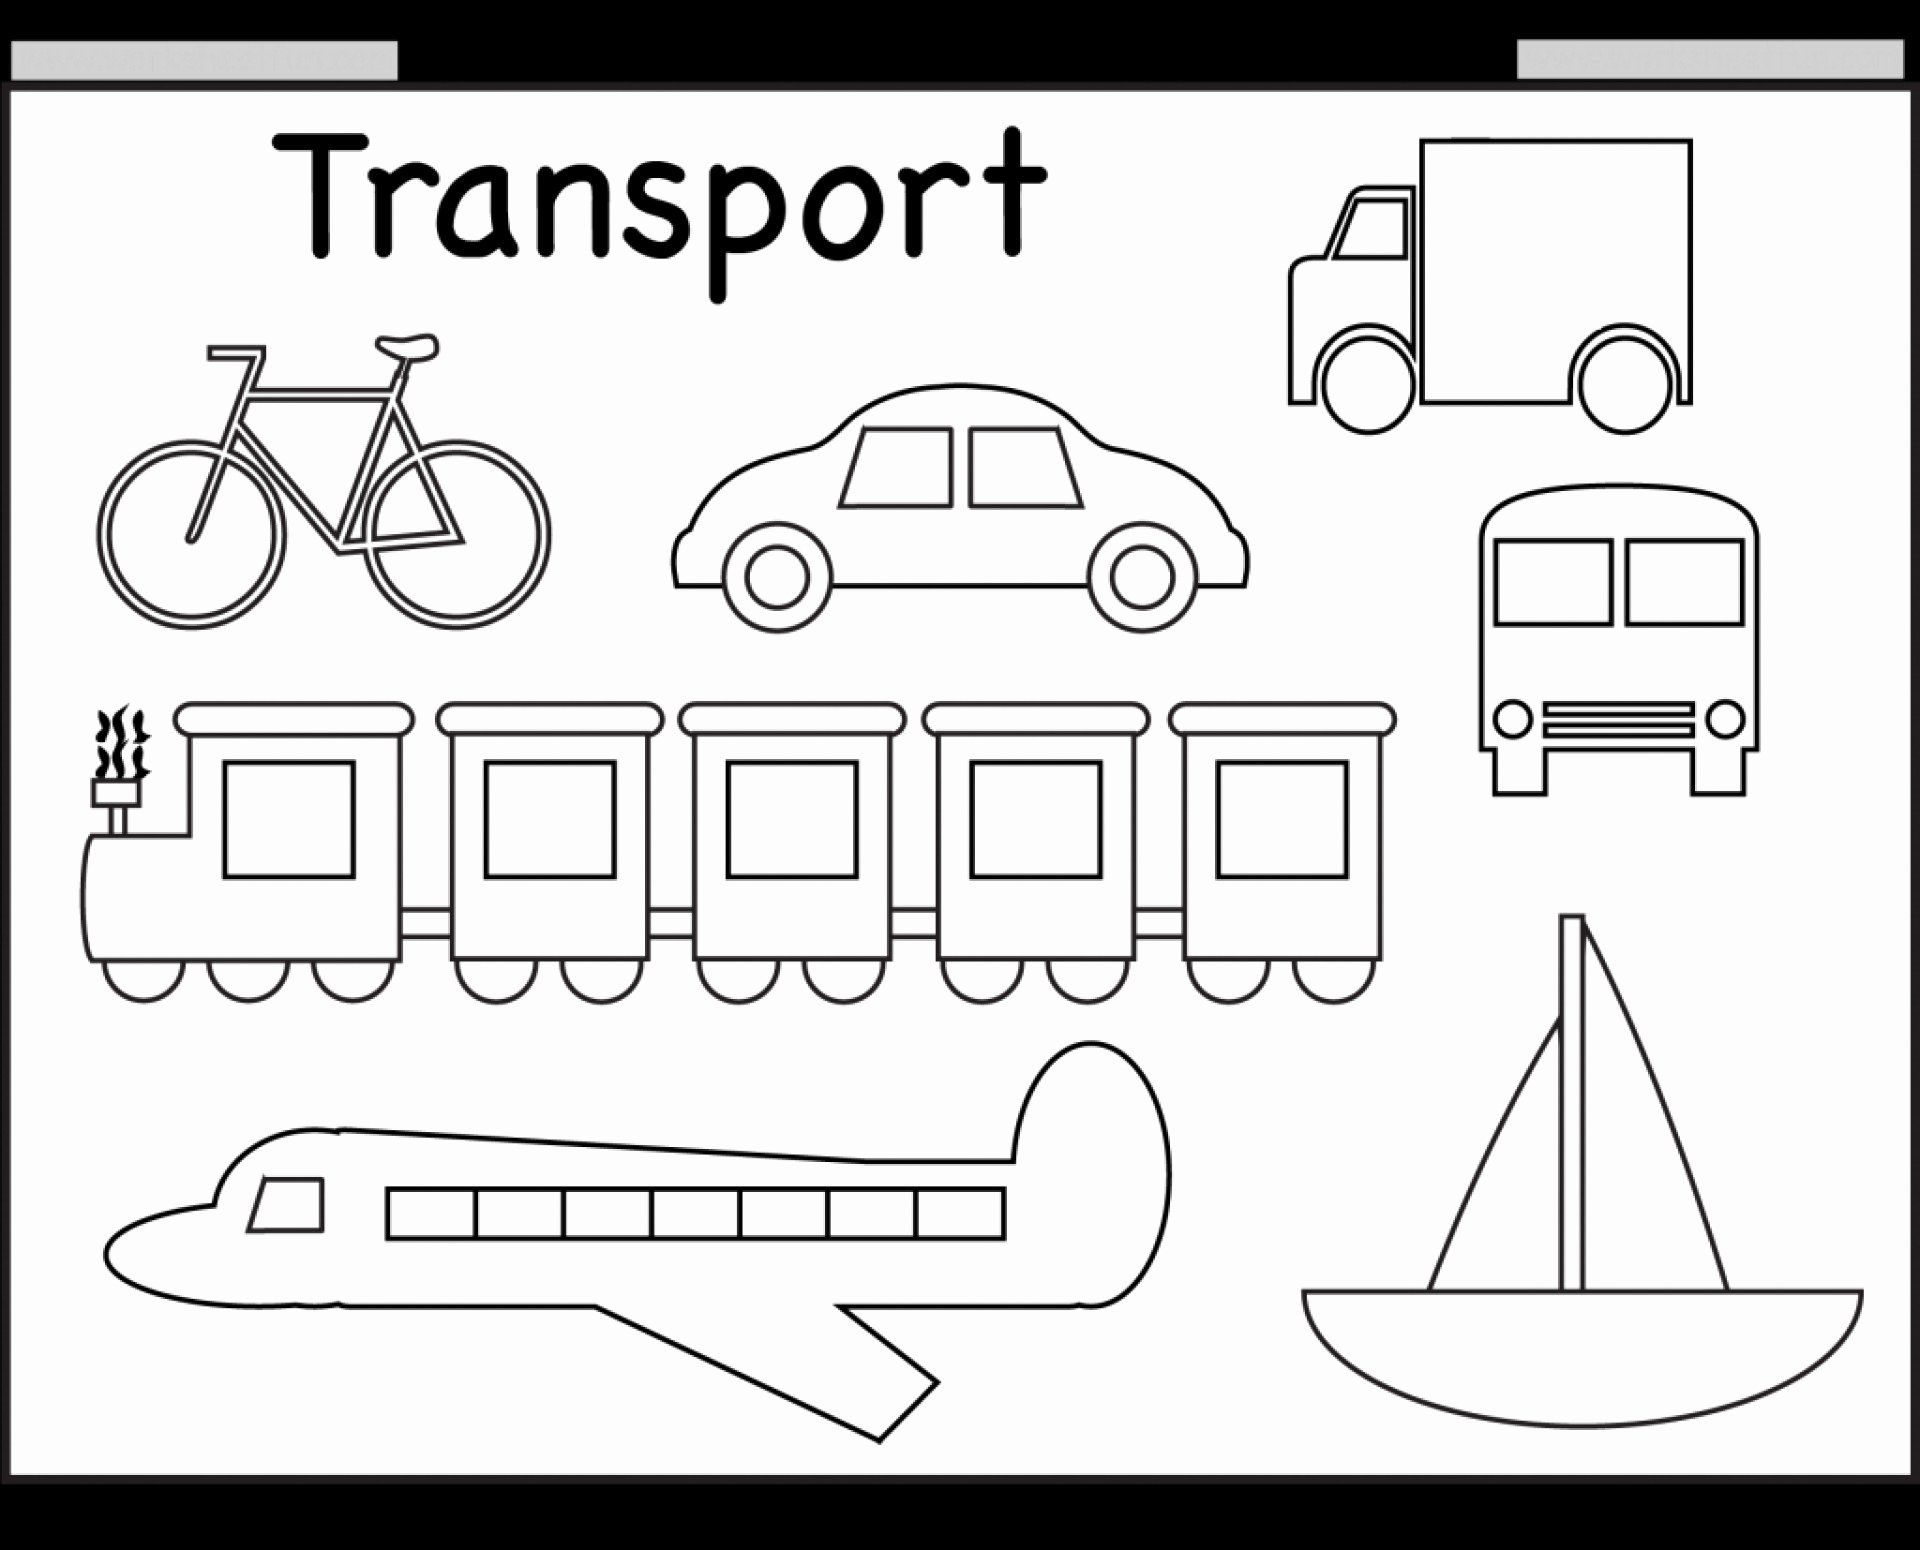 Water Transport Coloring Pages Luxury 018 Worksheet Learn Colors With Cars Do Dot In 2020 Transportation Preschool Preschool Coloring Pages Kindergarten Transportation [ 1550 x 1920 Pixel ]